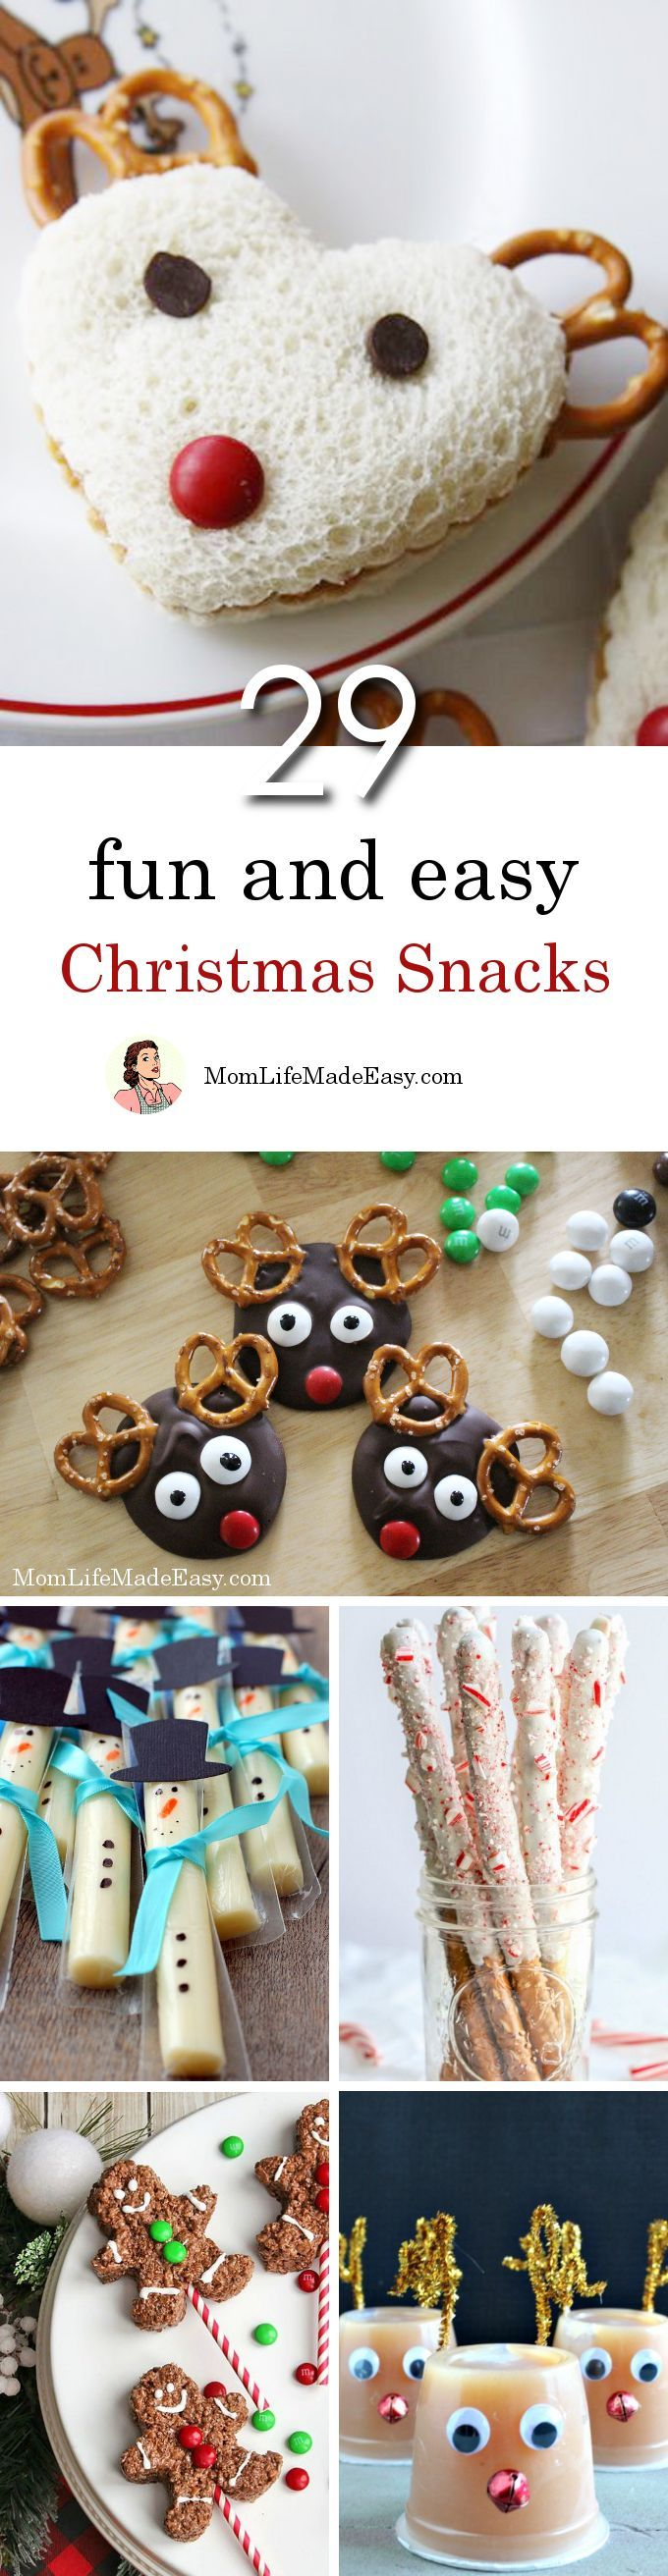 Creating fun Christmas snacks for kids shouldn't take hours of work. Here are 29 quick and easy holiday treats that are perfect for lunches, classroom parties, or just because!